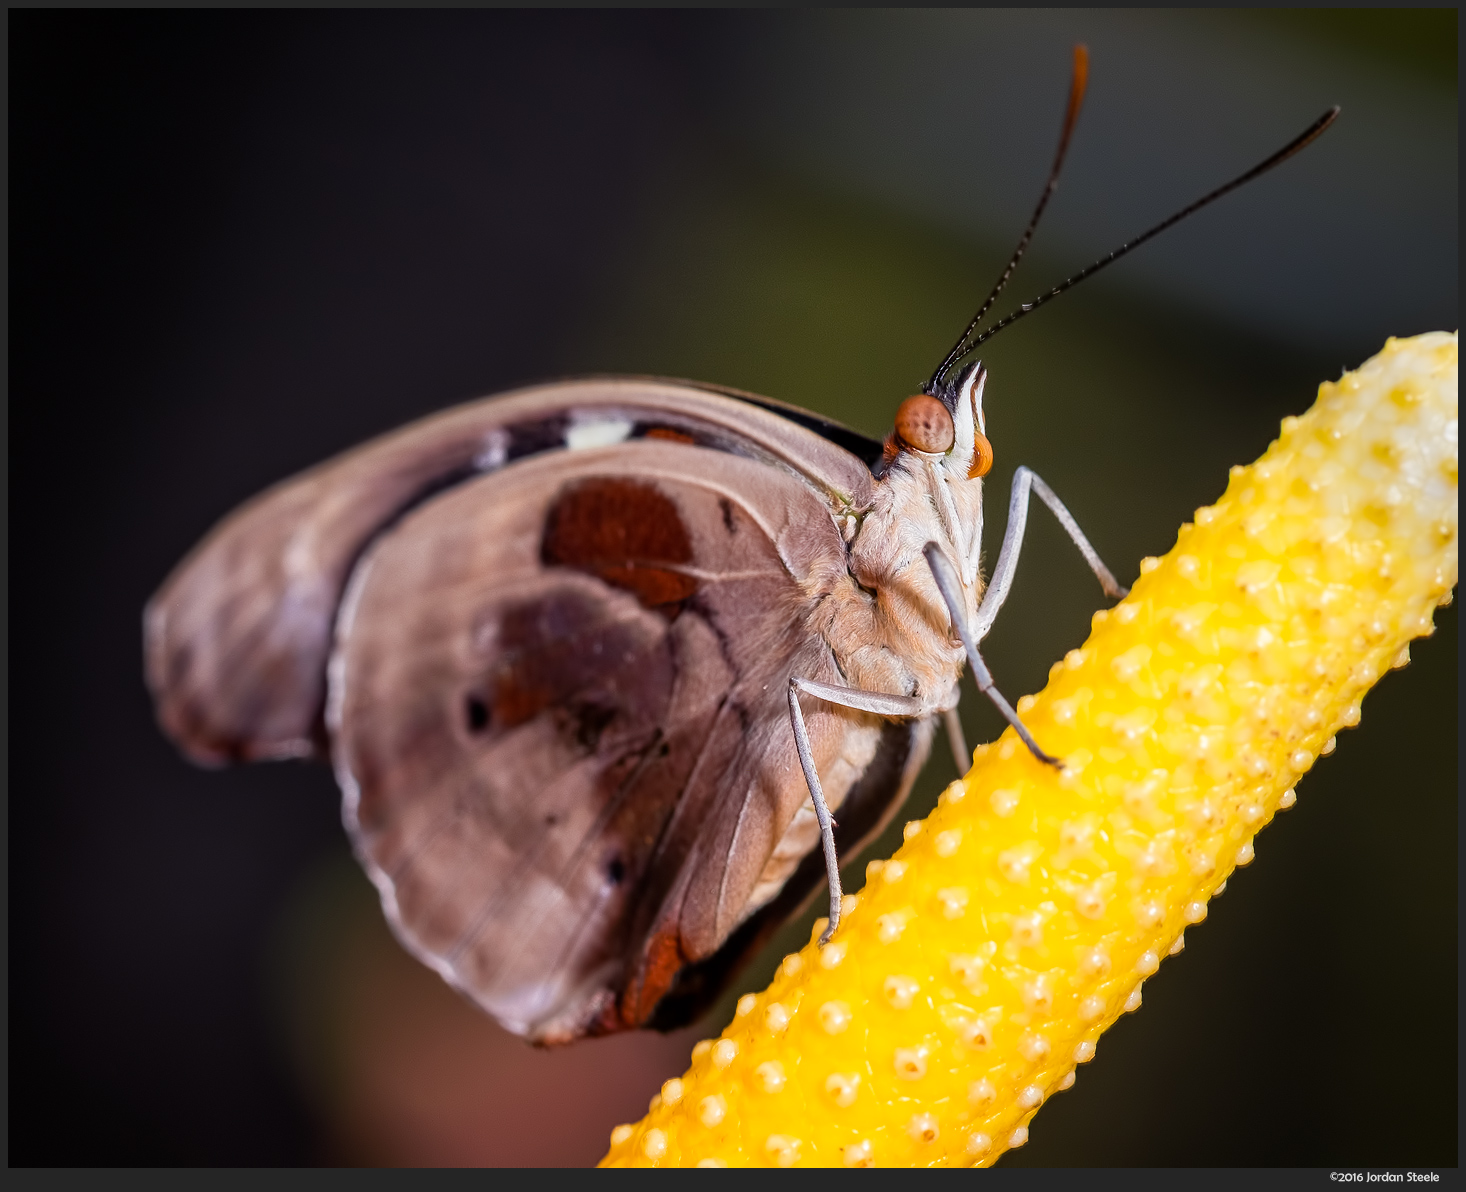 Butterfly - Fuji X-T1 with Fujinon XF 60mm f/2.4 with off-camera flash